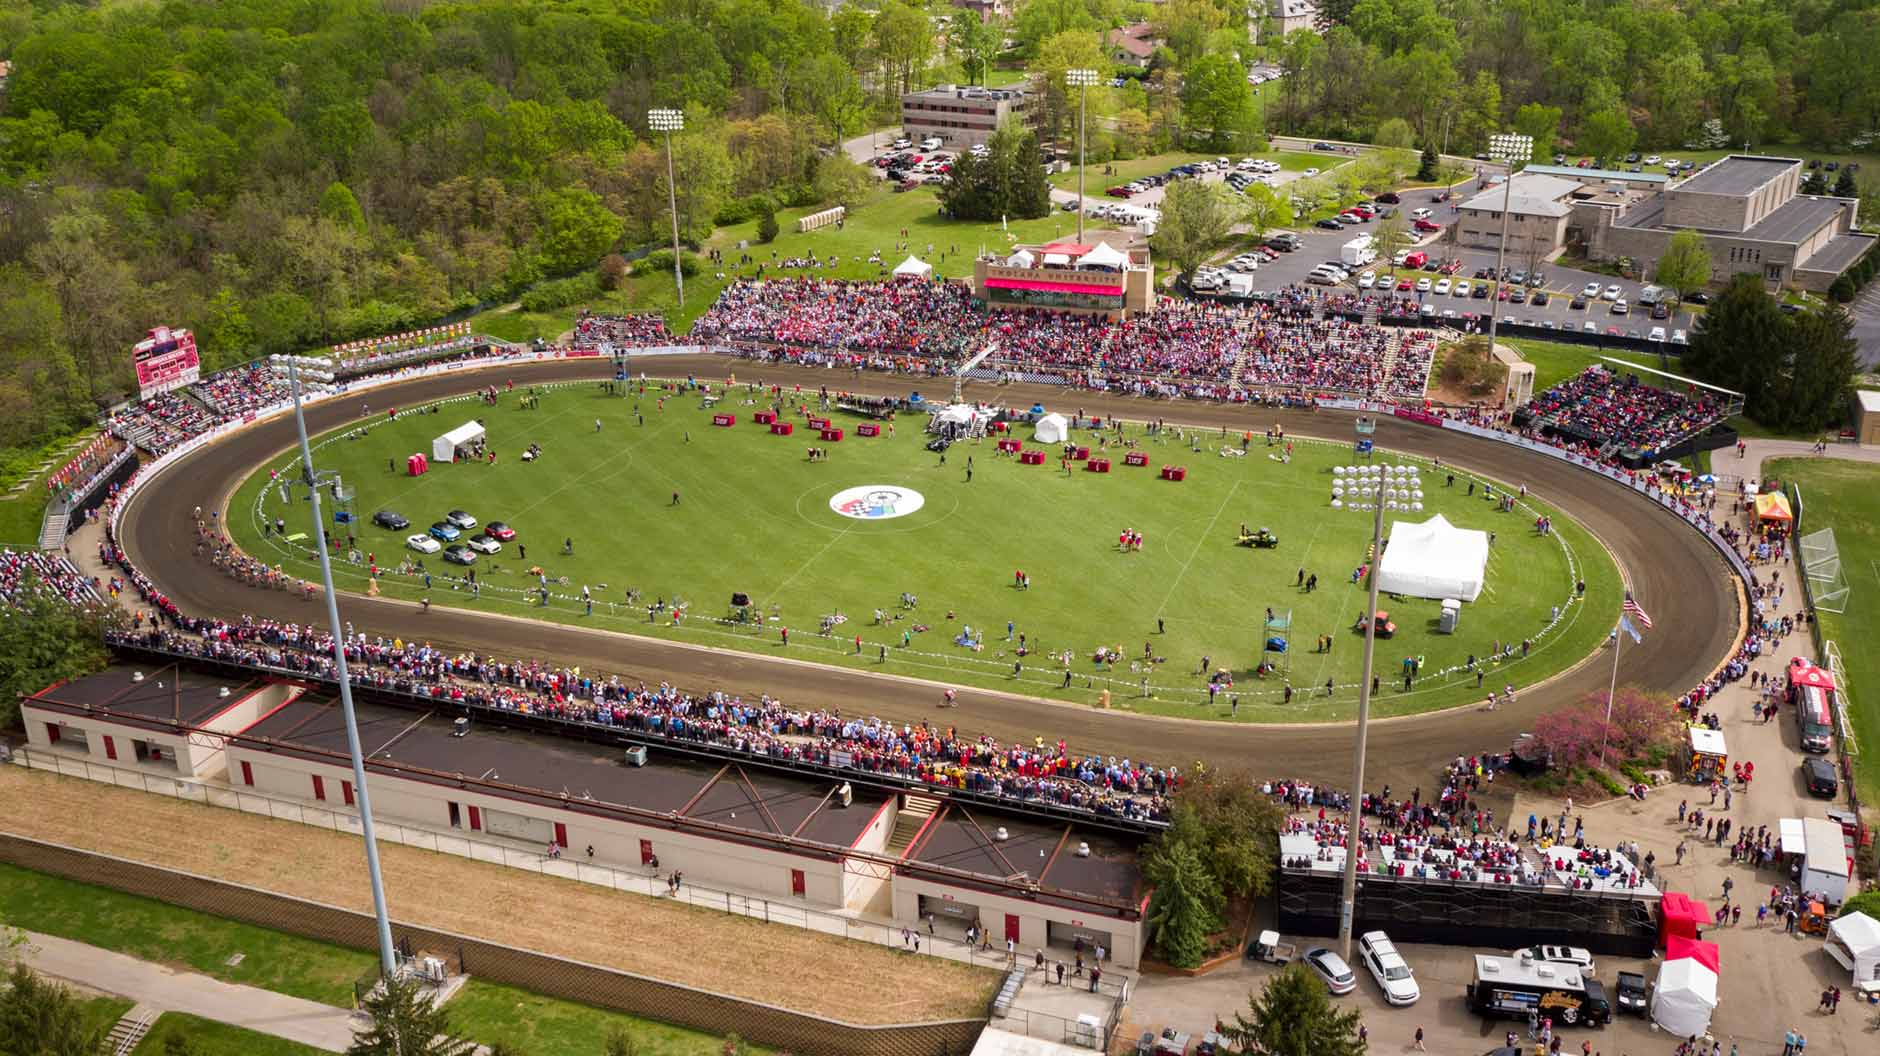 Riders compete in the 67th running of the Men's Little 500 at Bill Armstrong Stadium on Saturday, April 22, 2017. (Eric Rudd and James Brosher/IU Communications)